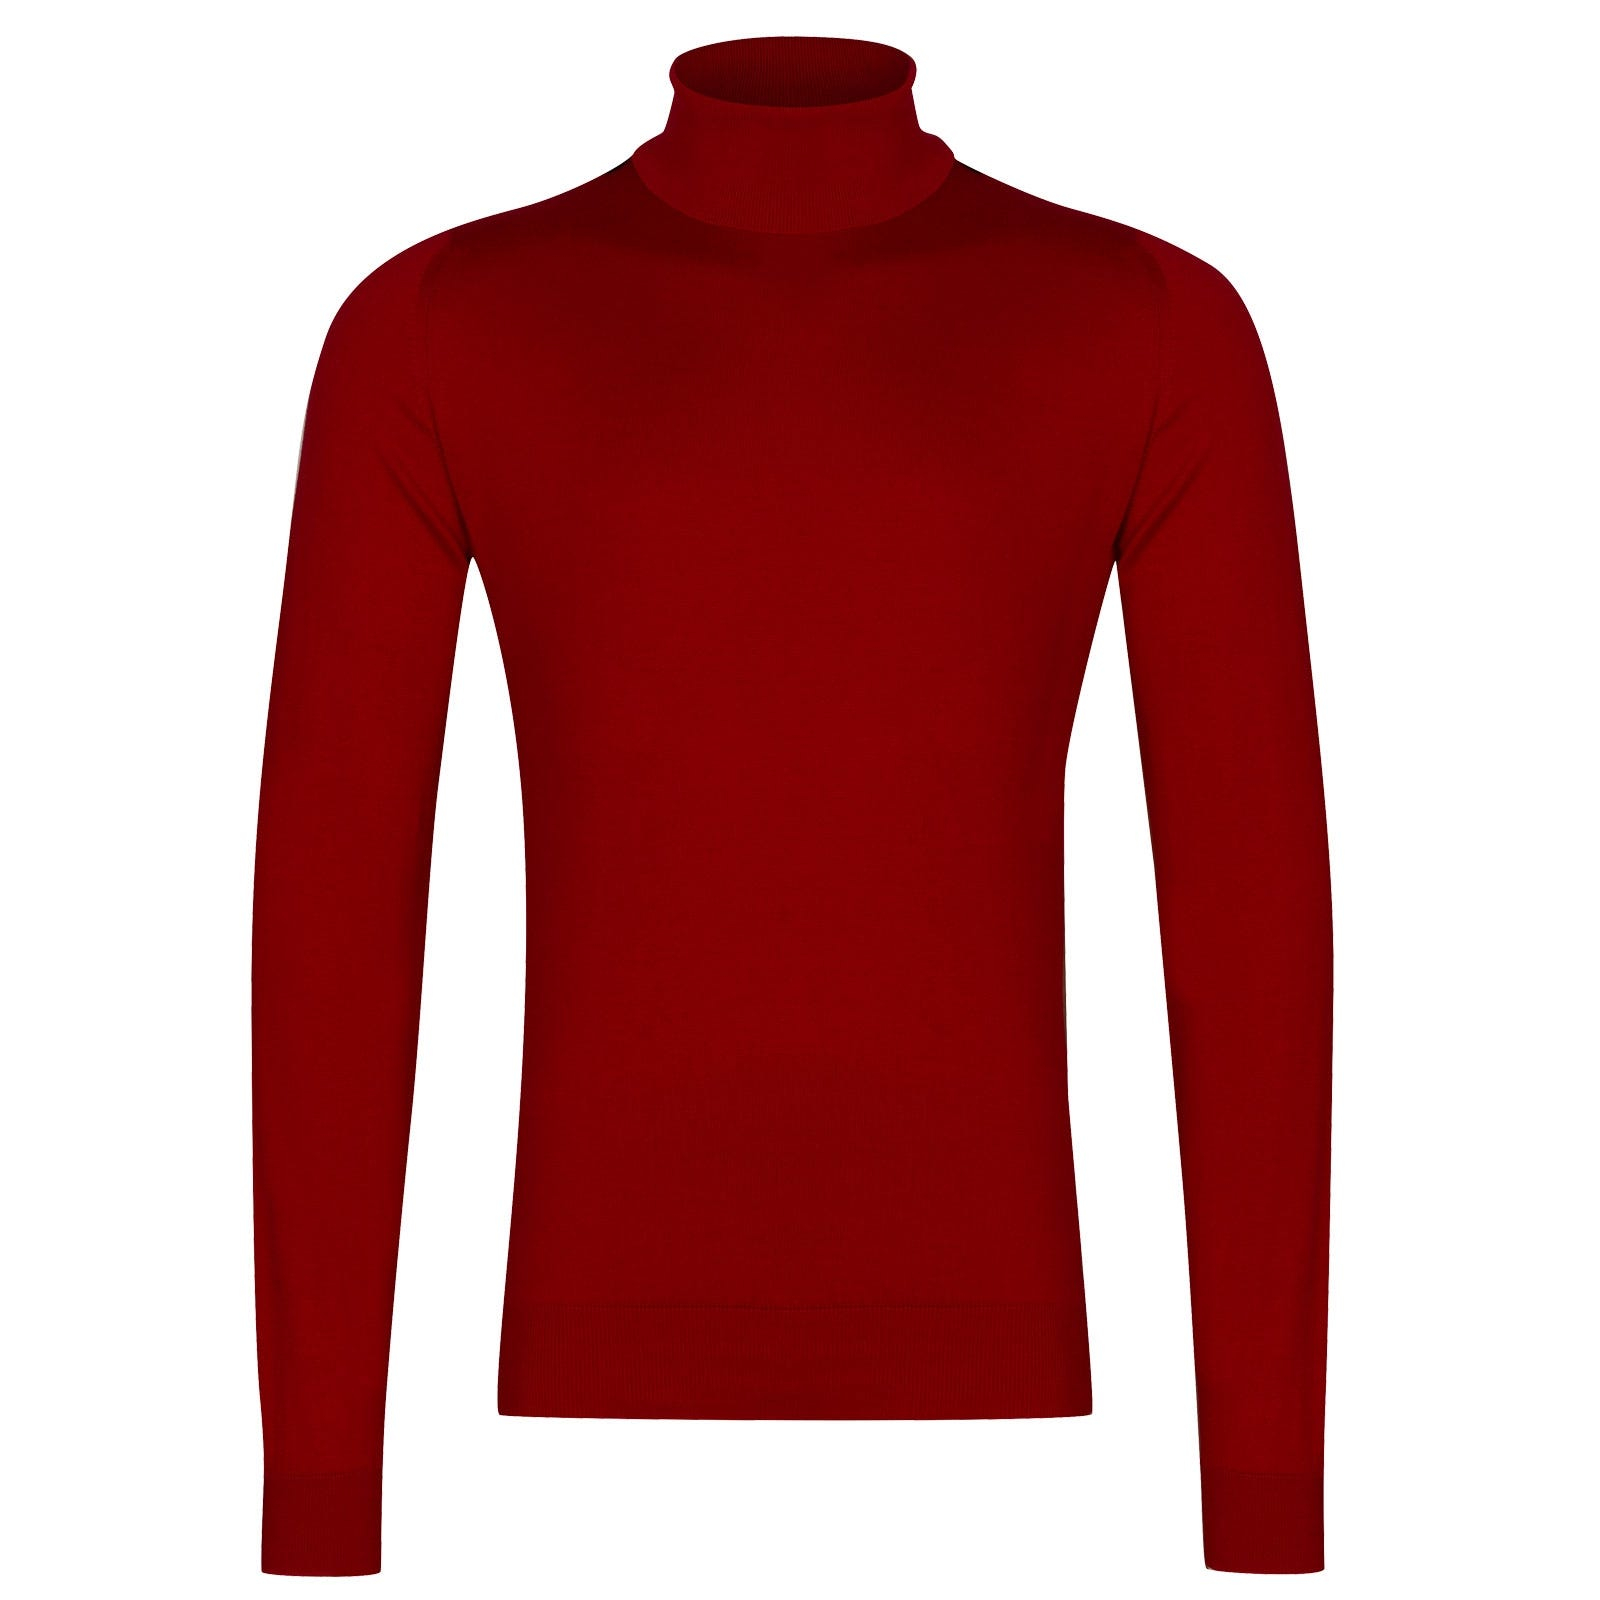 John Smedley Hawley Sea Island Cotton Pullover in Thermal Red-L